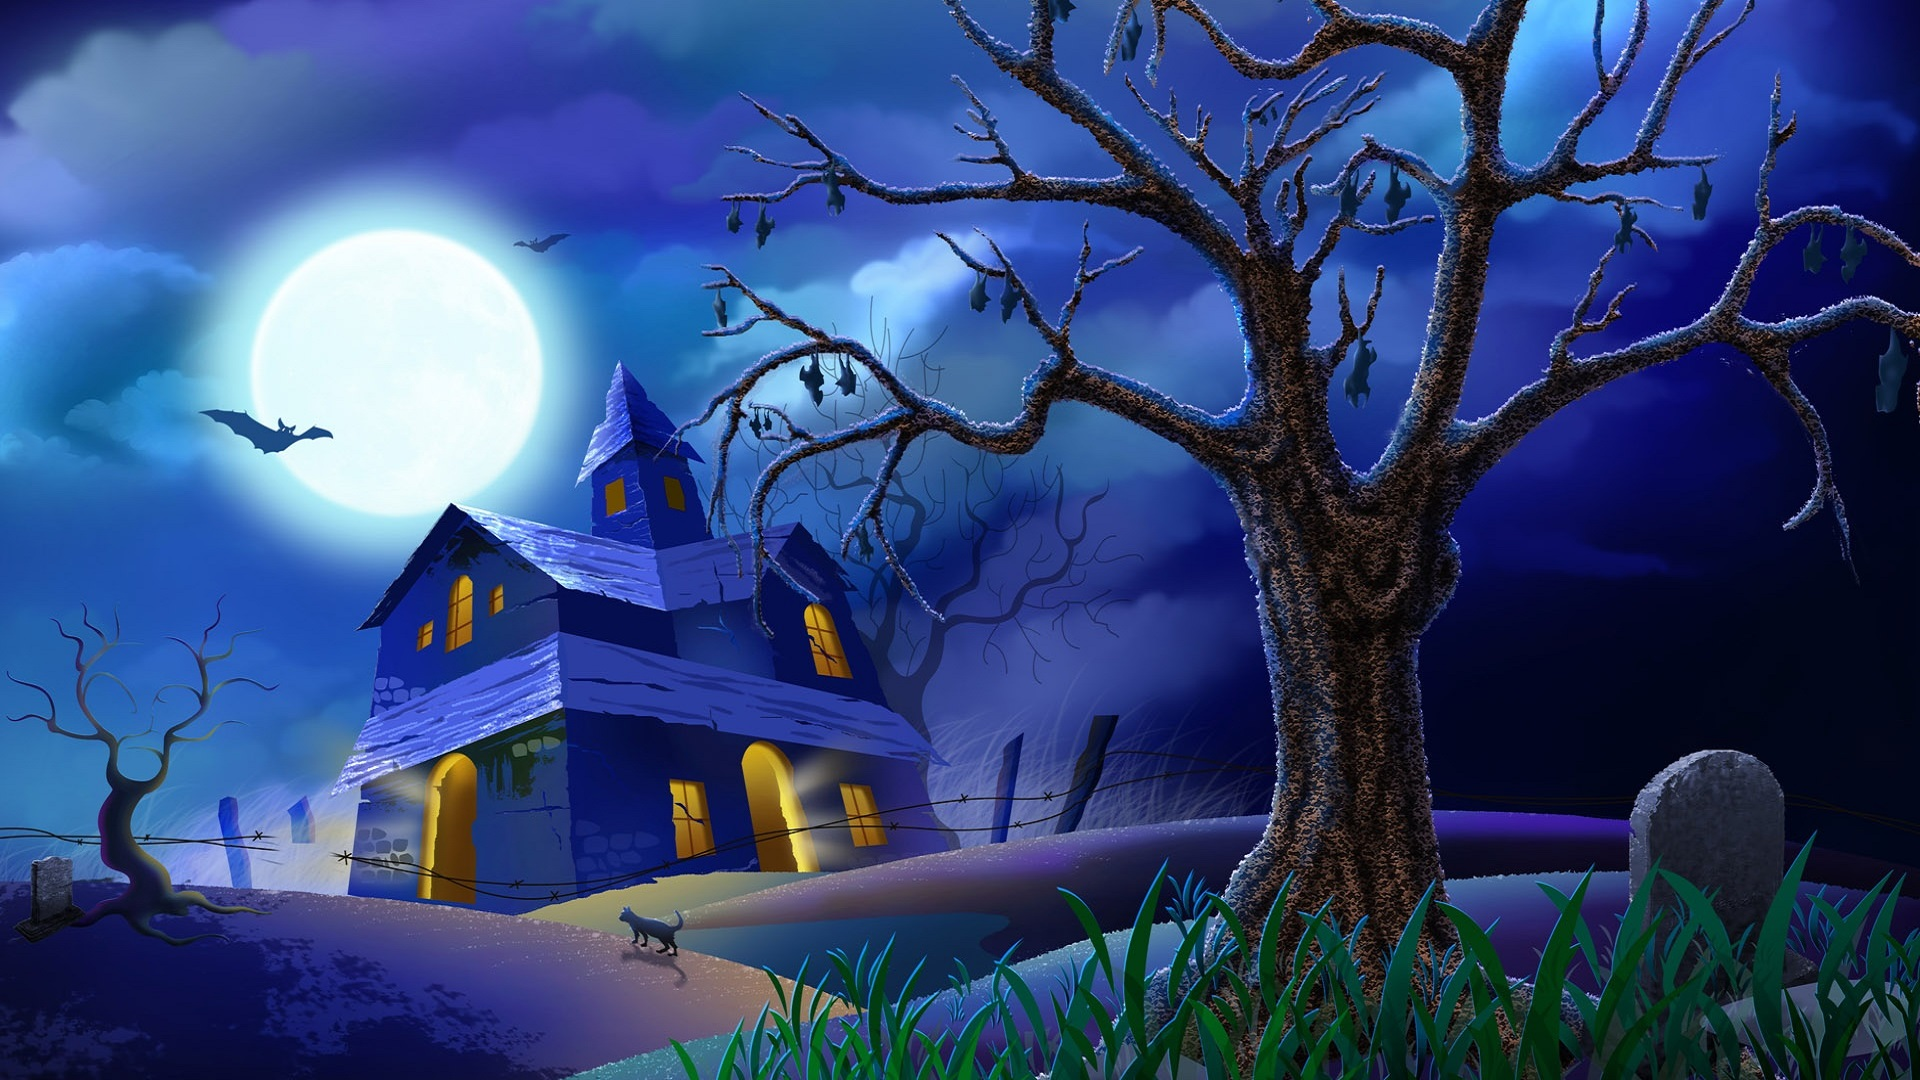 beautiful-halloween-images-in-blue